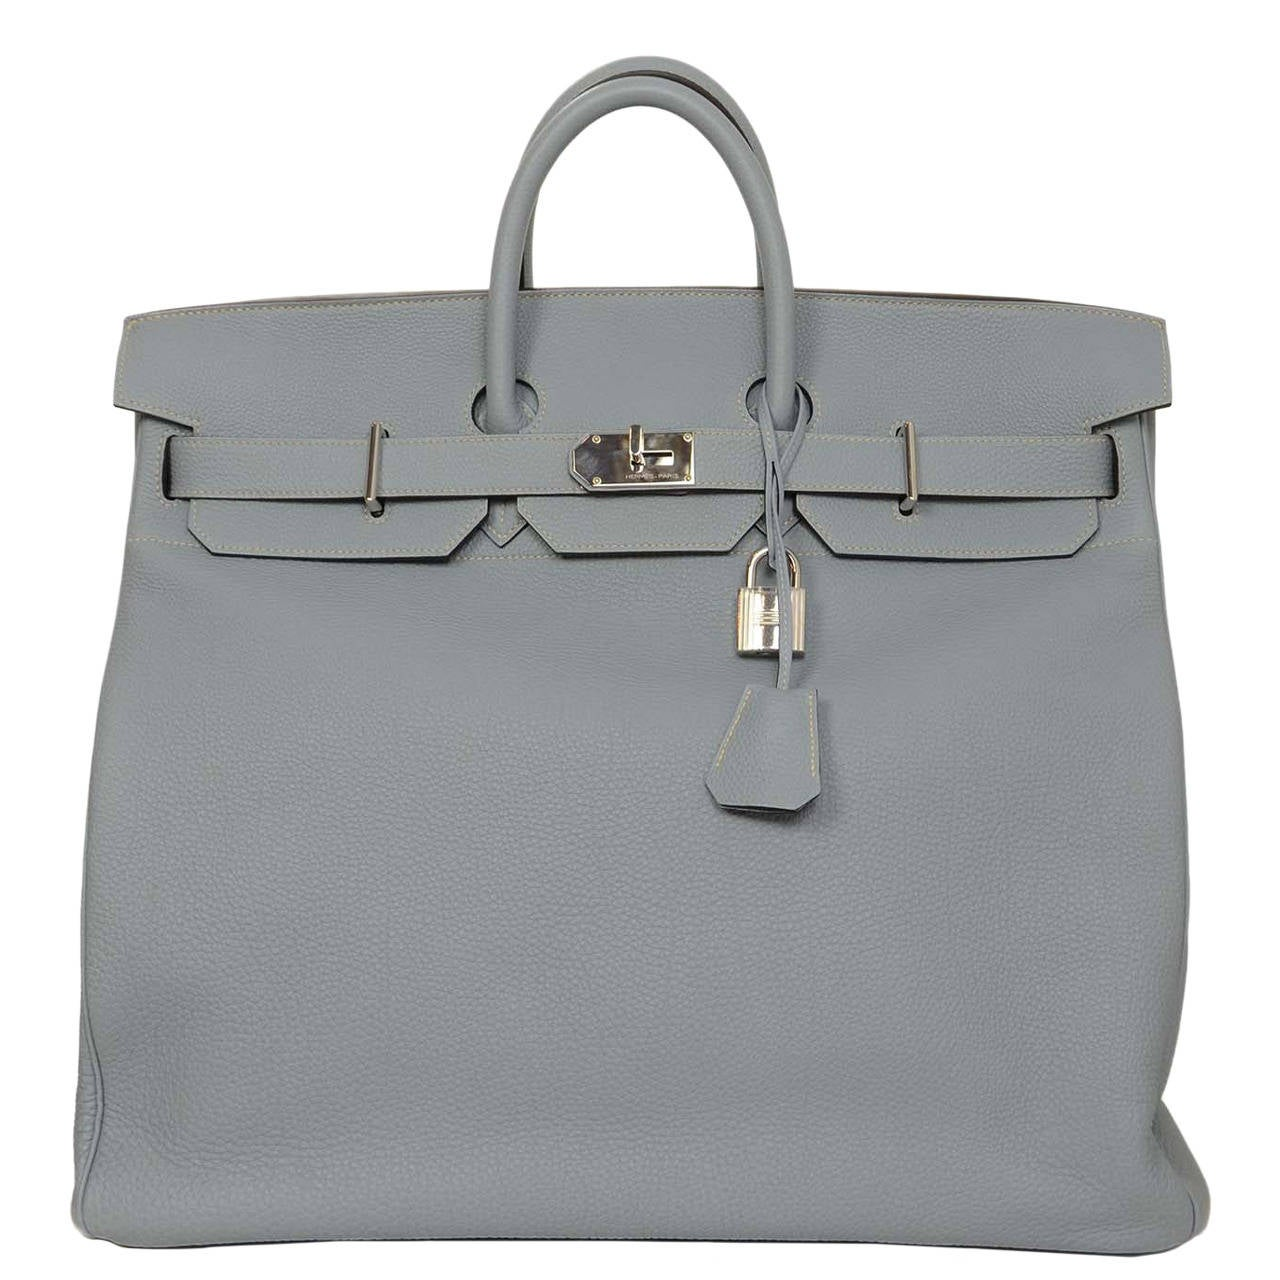 6af39fe0df3 ... where can i buy hermes 2013 50cm blue lin togo leather hac birkin  travel bag phw